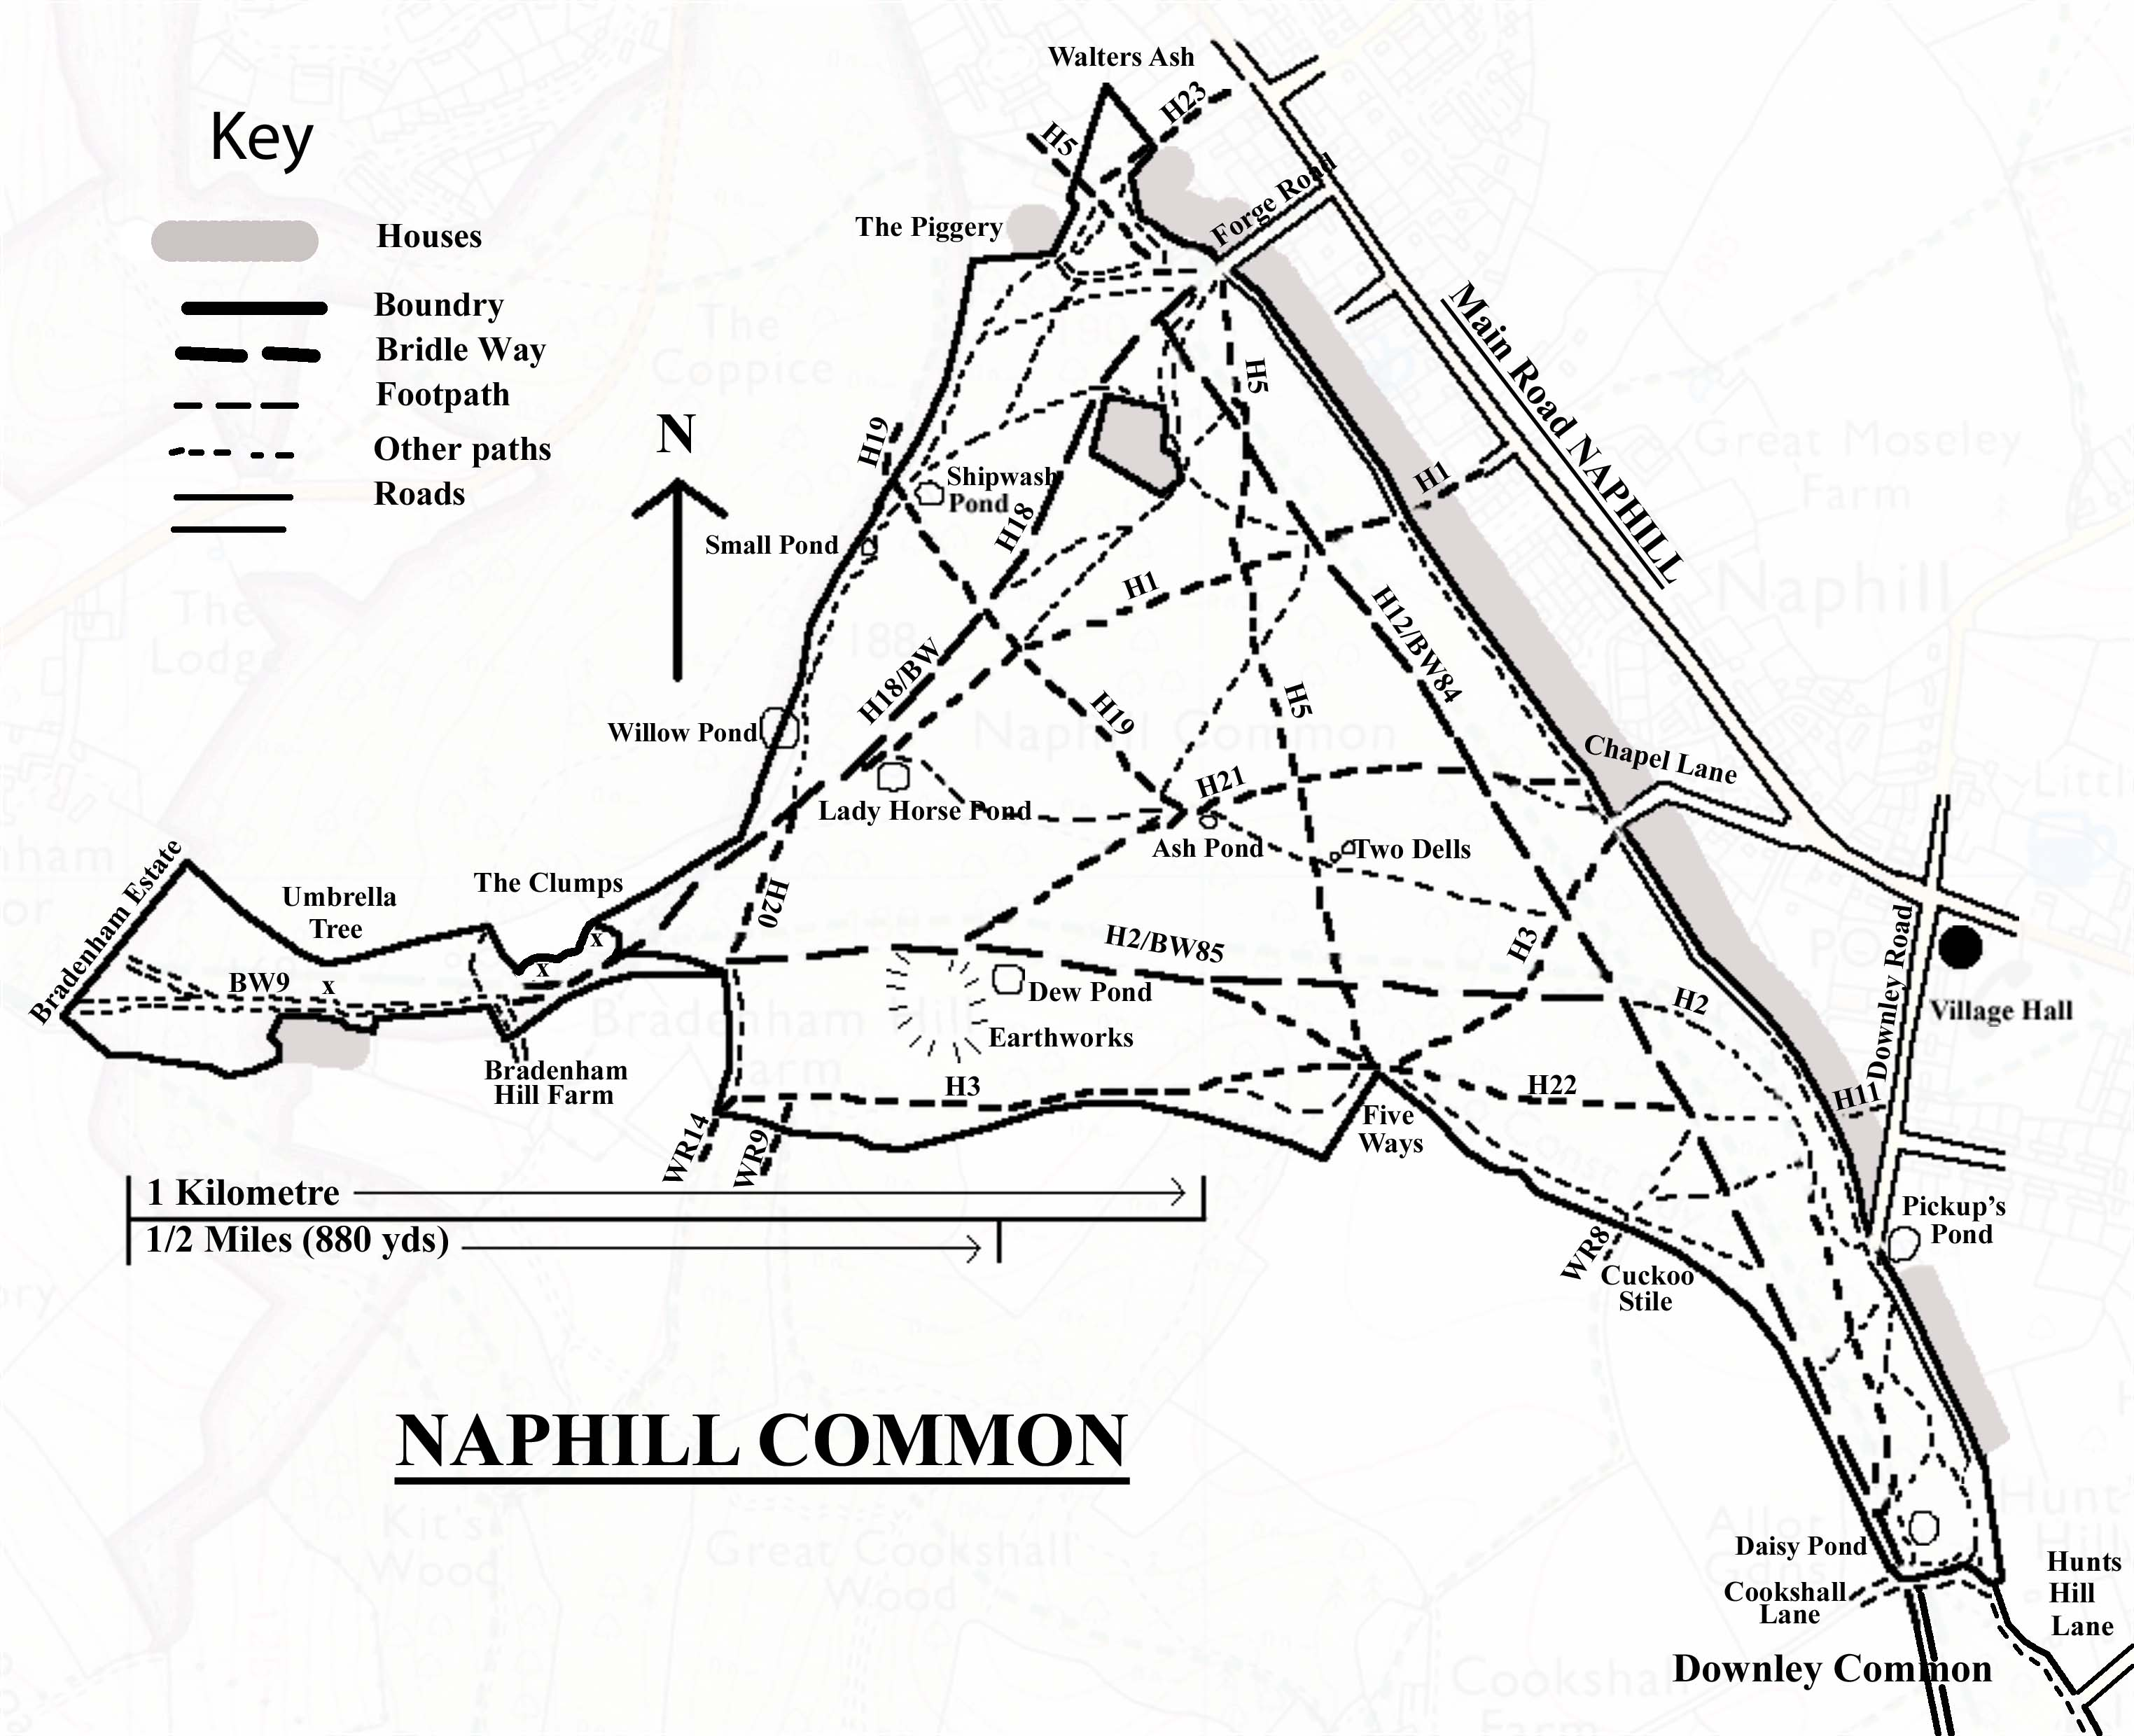 Naphill Common Footpaths